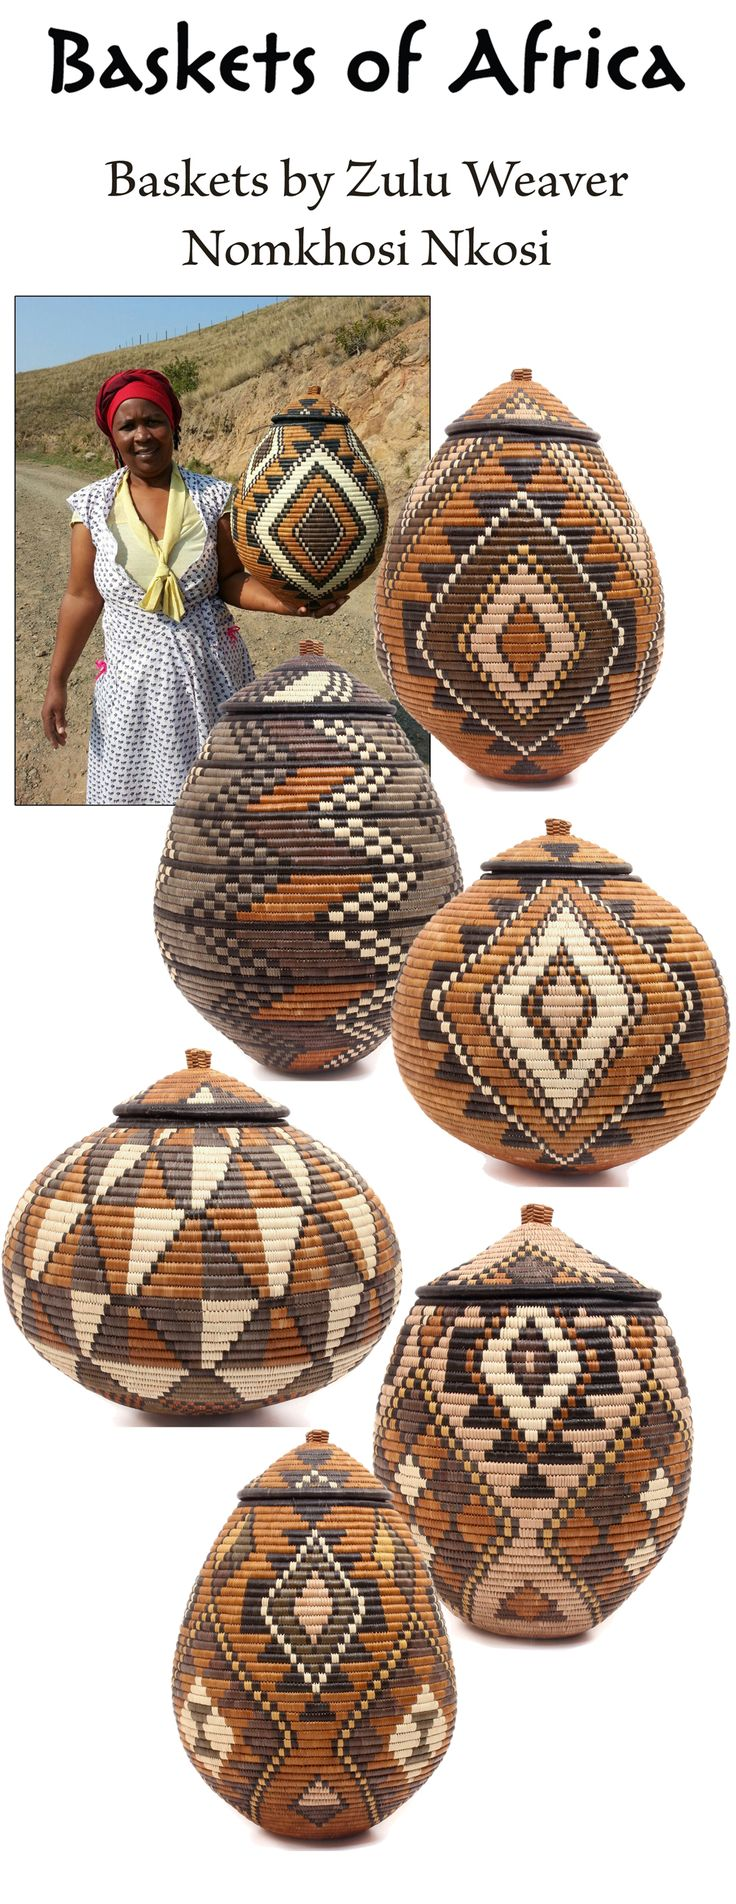 #Zulu weaver Nomkhosi Nkosi lives in the farmlands of Zululand, South Africa. She regularly sends #BasketsOfAfrica her beautiful Ukhamba baskets with traditional patterns and geometric designs. Many of her baskets feature asymmetrical designs, so the patterns are different on every side. Her creations are warm and elegant and beautiful.